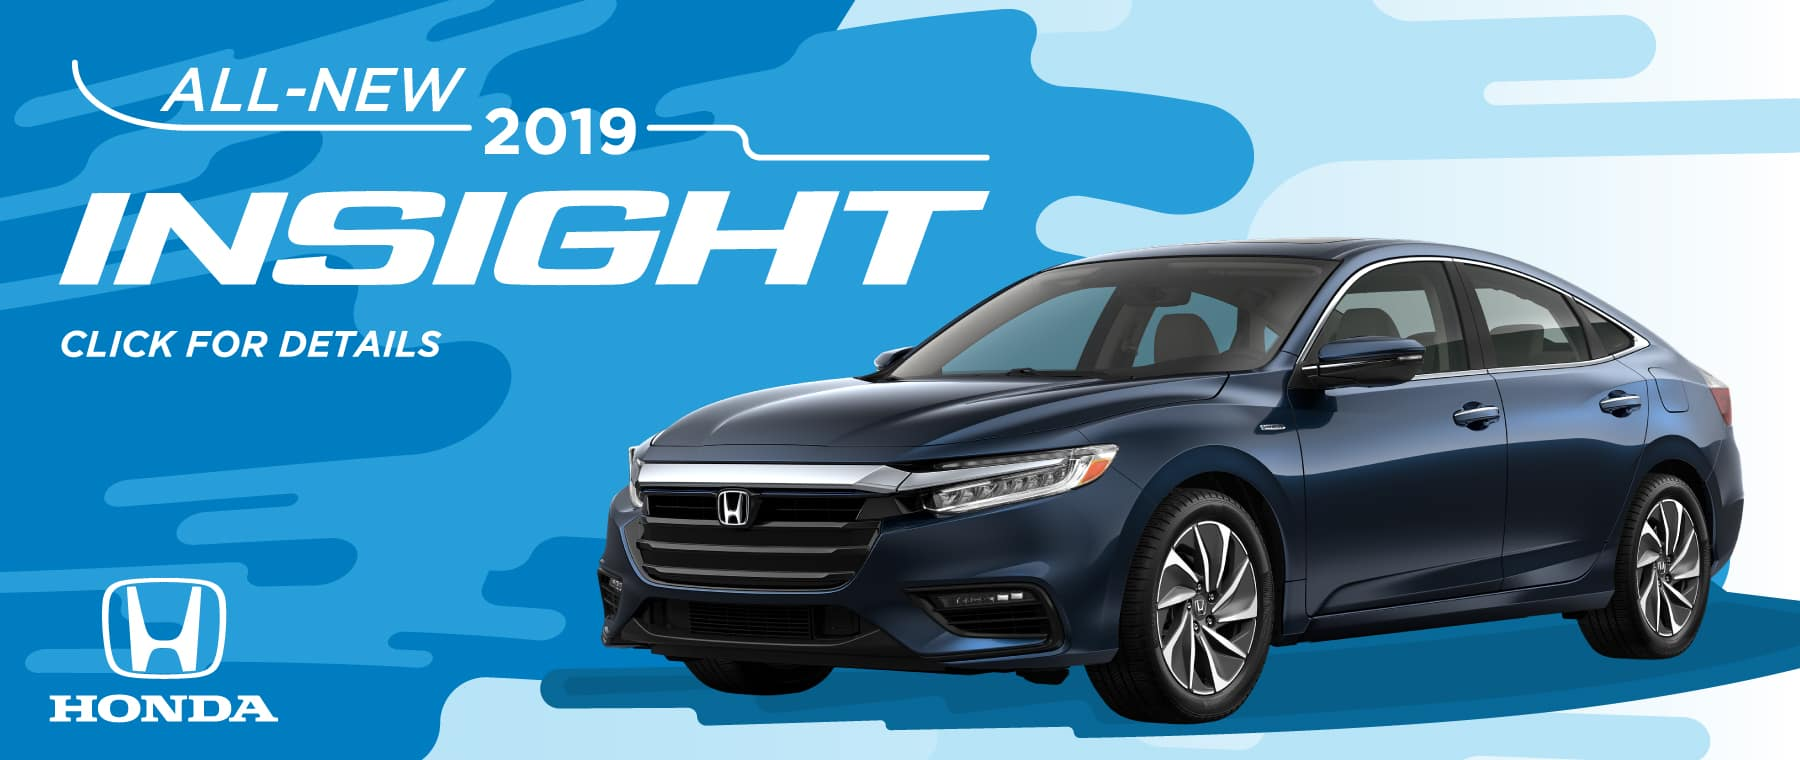 2019 Honda Insight NOW available at West Hills Honda in Bremerton!